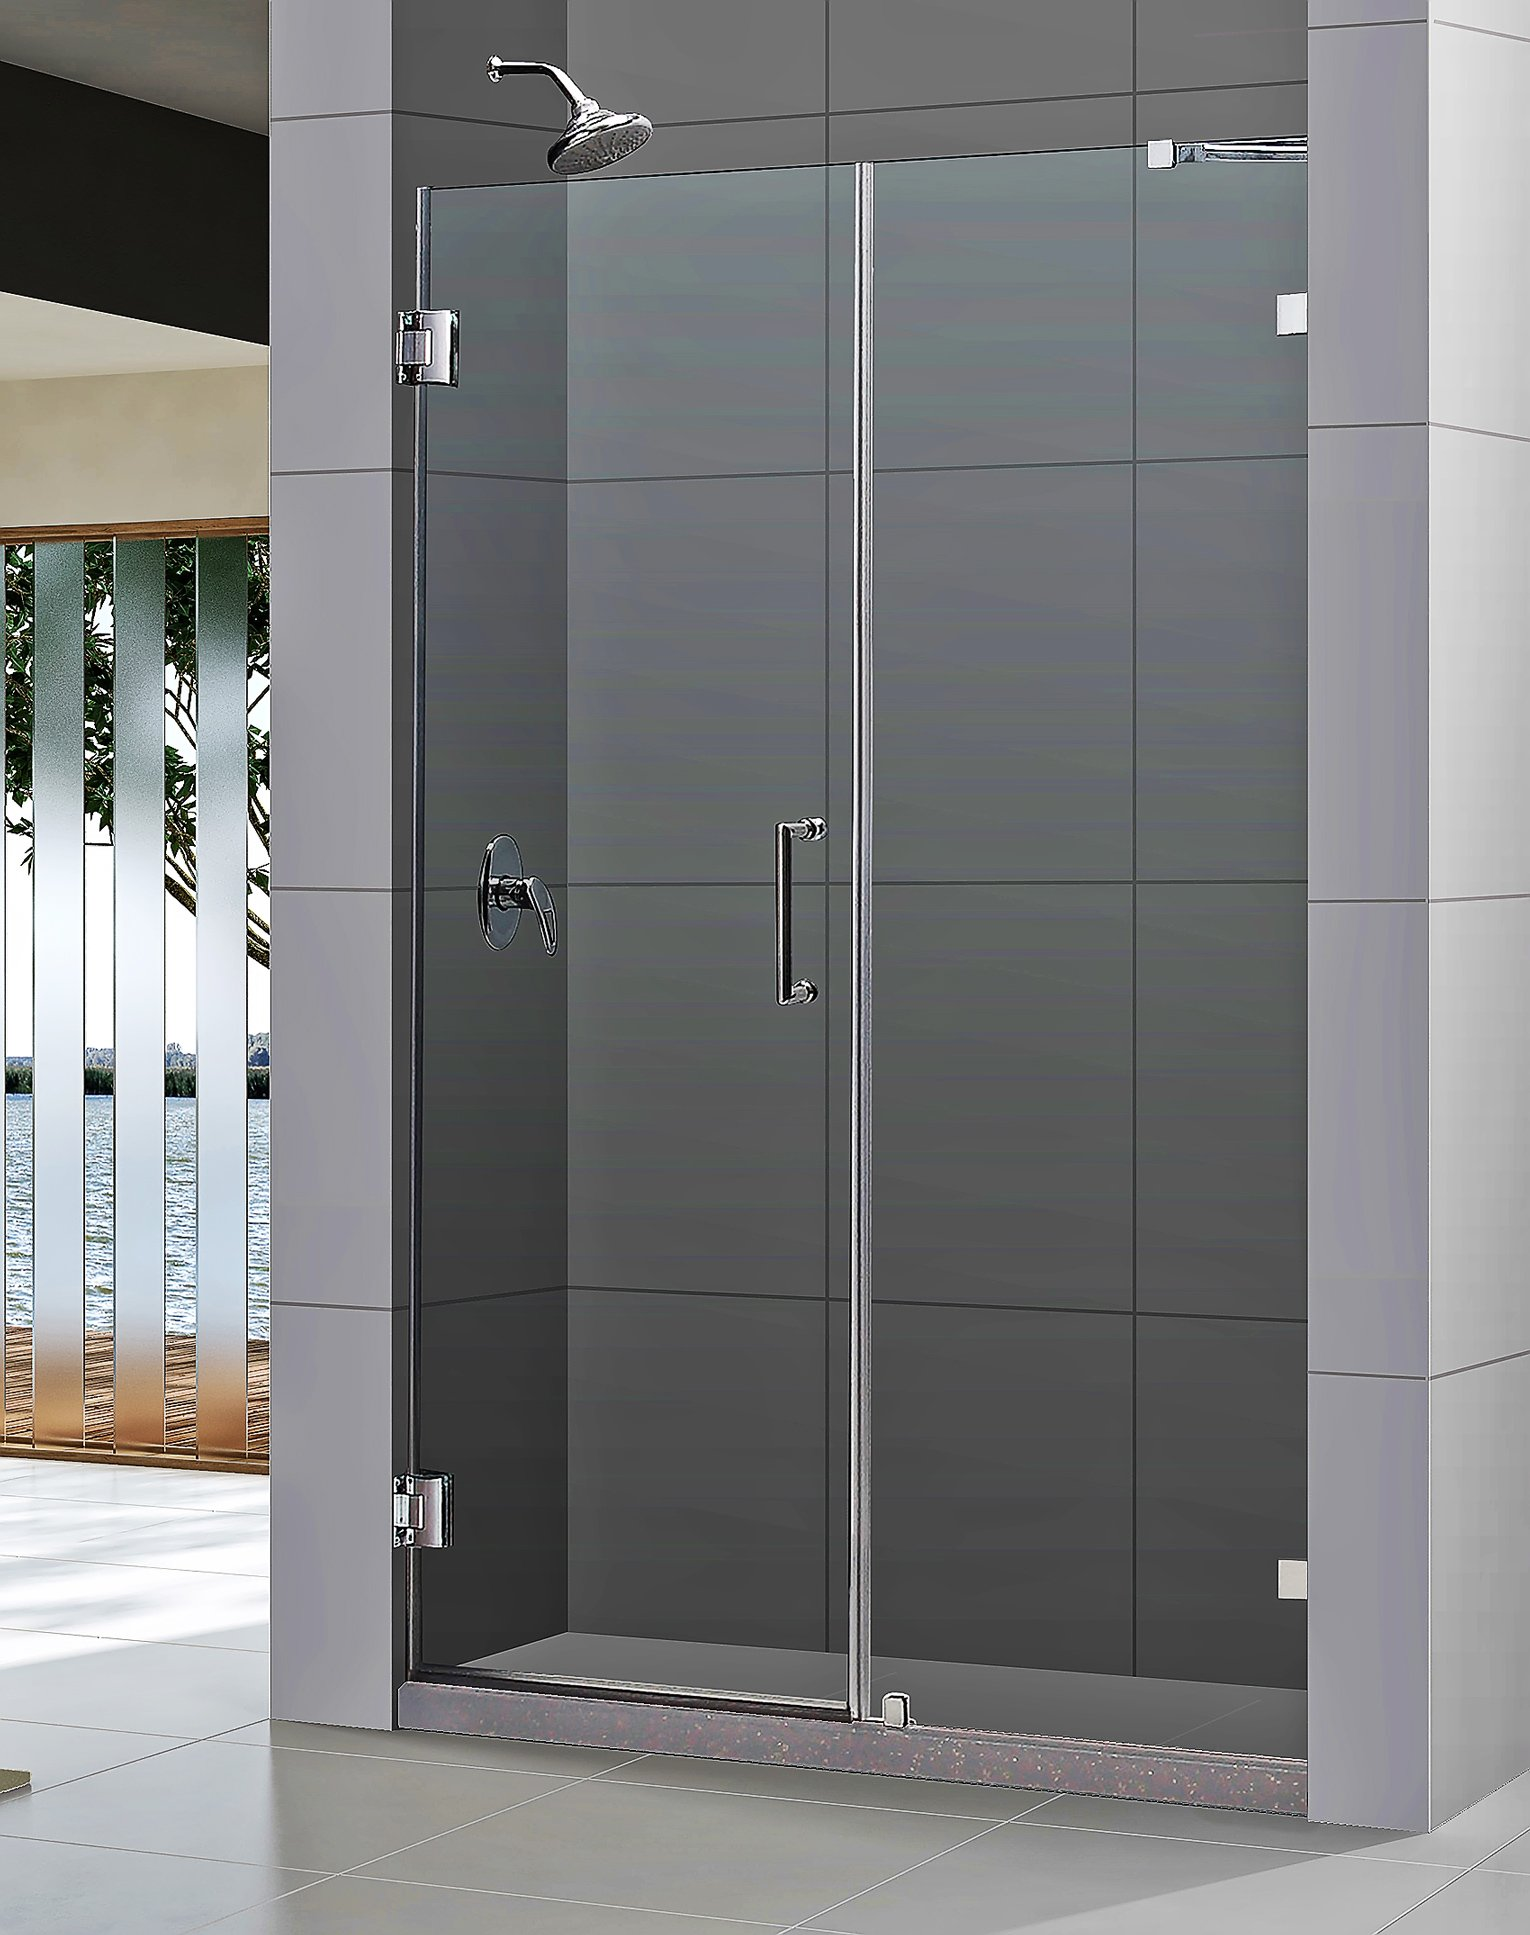 DreamLine Unidoor Lux 60 in. Width, Frameless Hinged Shower Door, 3/8'' Glass, Chrome Finish